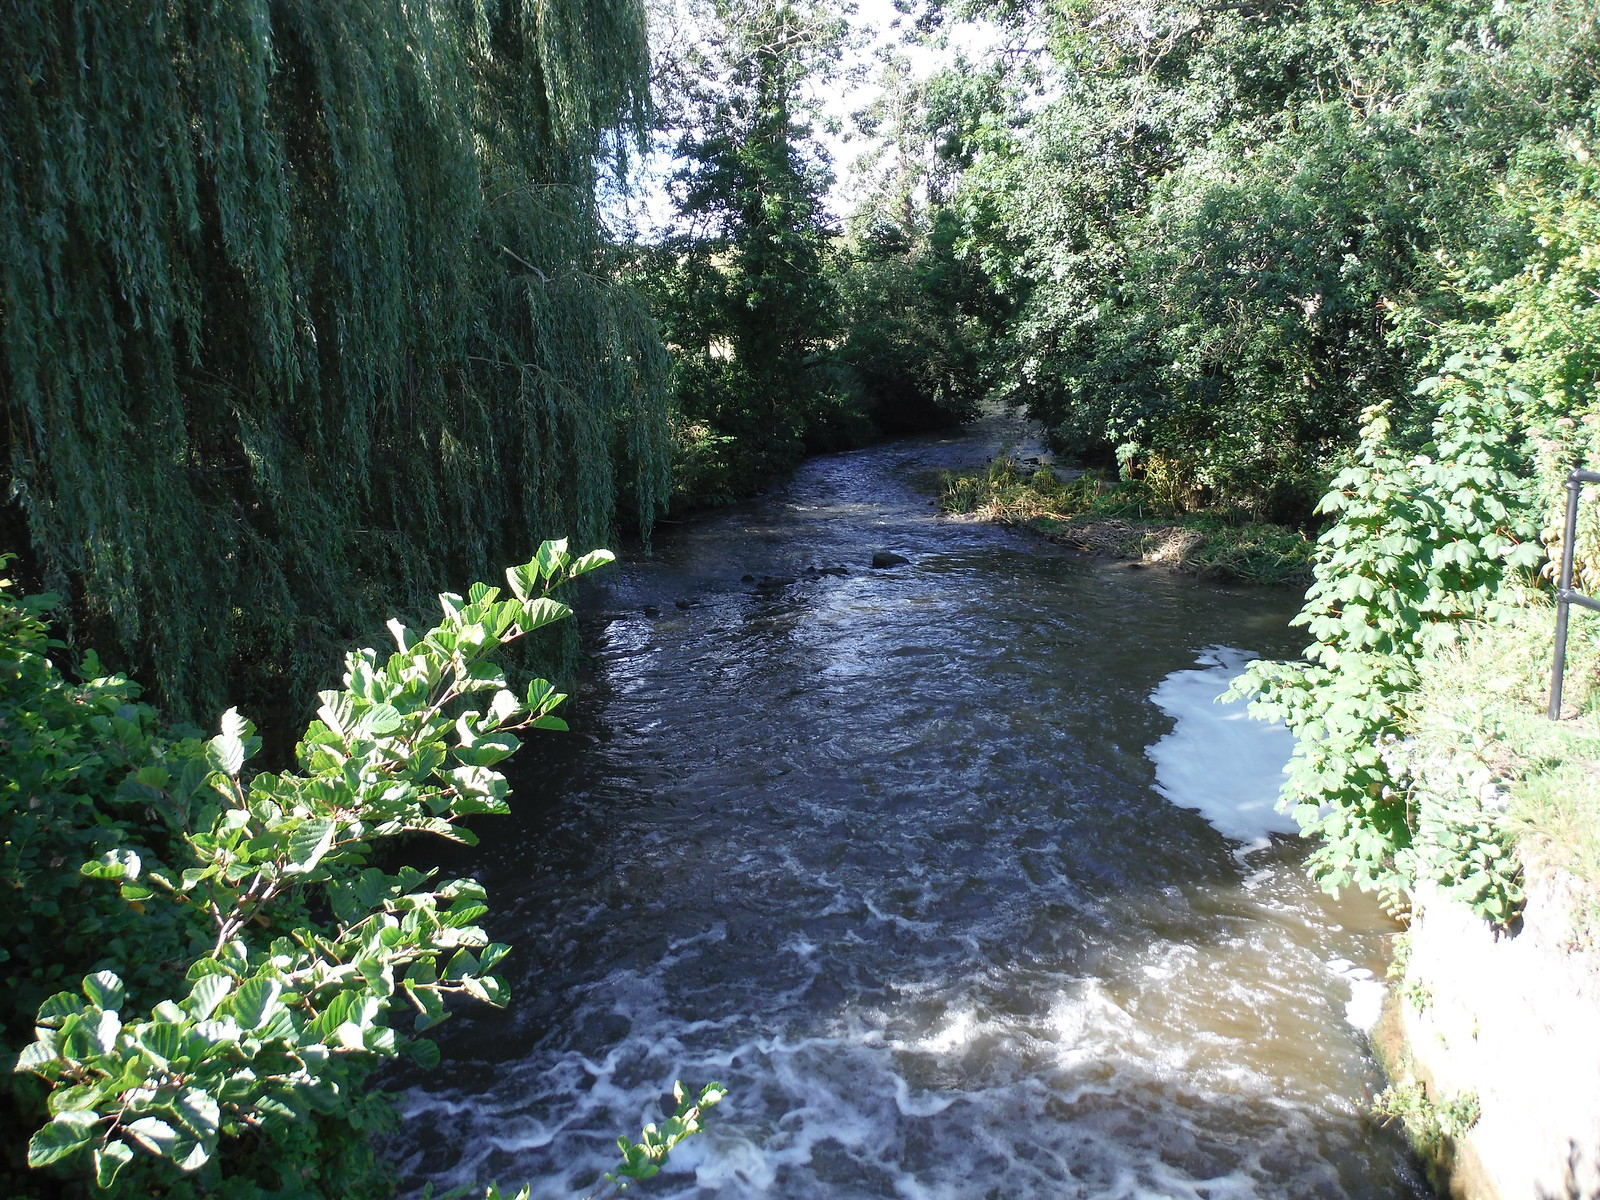 Tisbury Mill Weir Outflow SWC Walk 248 Tisbury Circular via Hindon